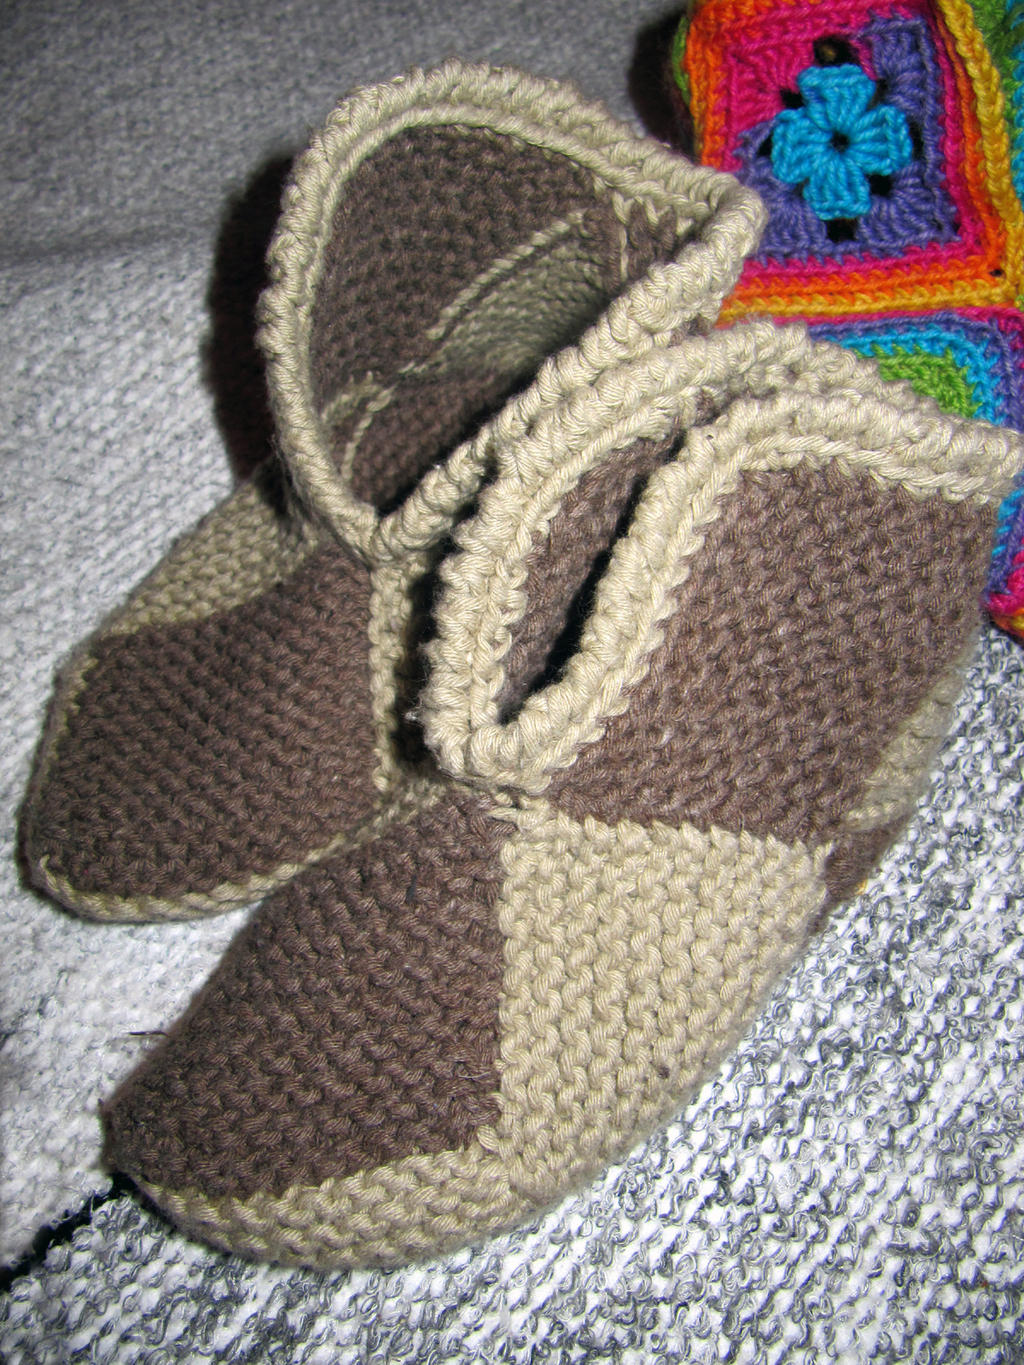 Knitting On The Net Slippers : Simple knitted slippers by coccis on deviantart